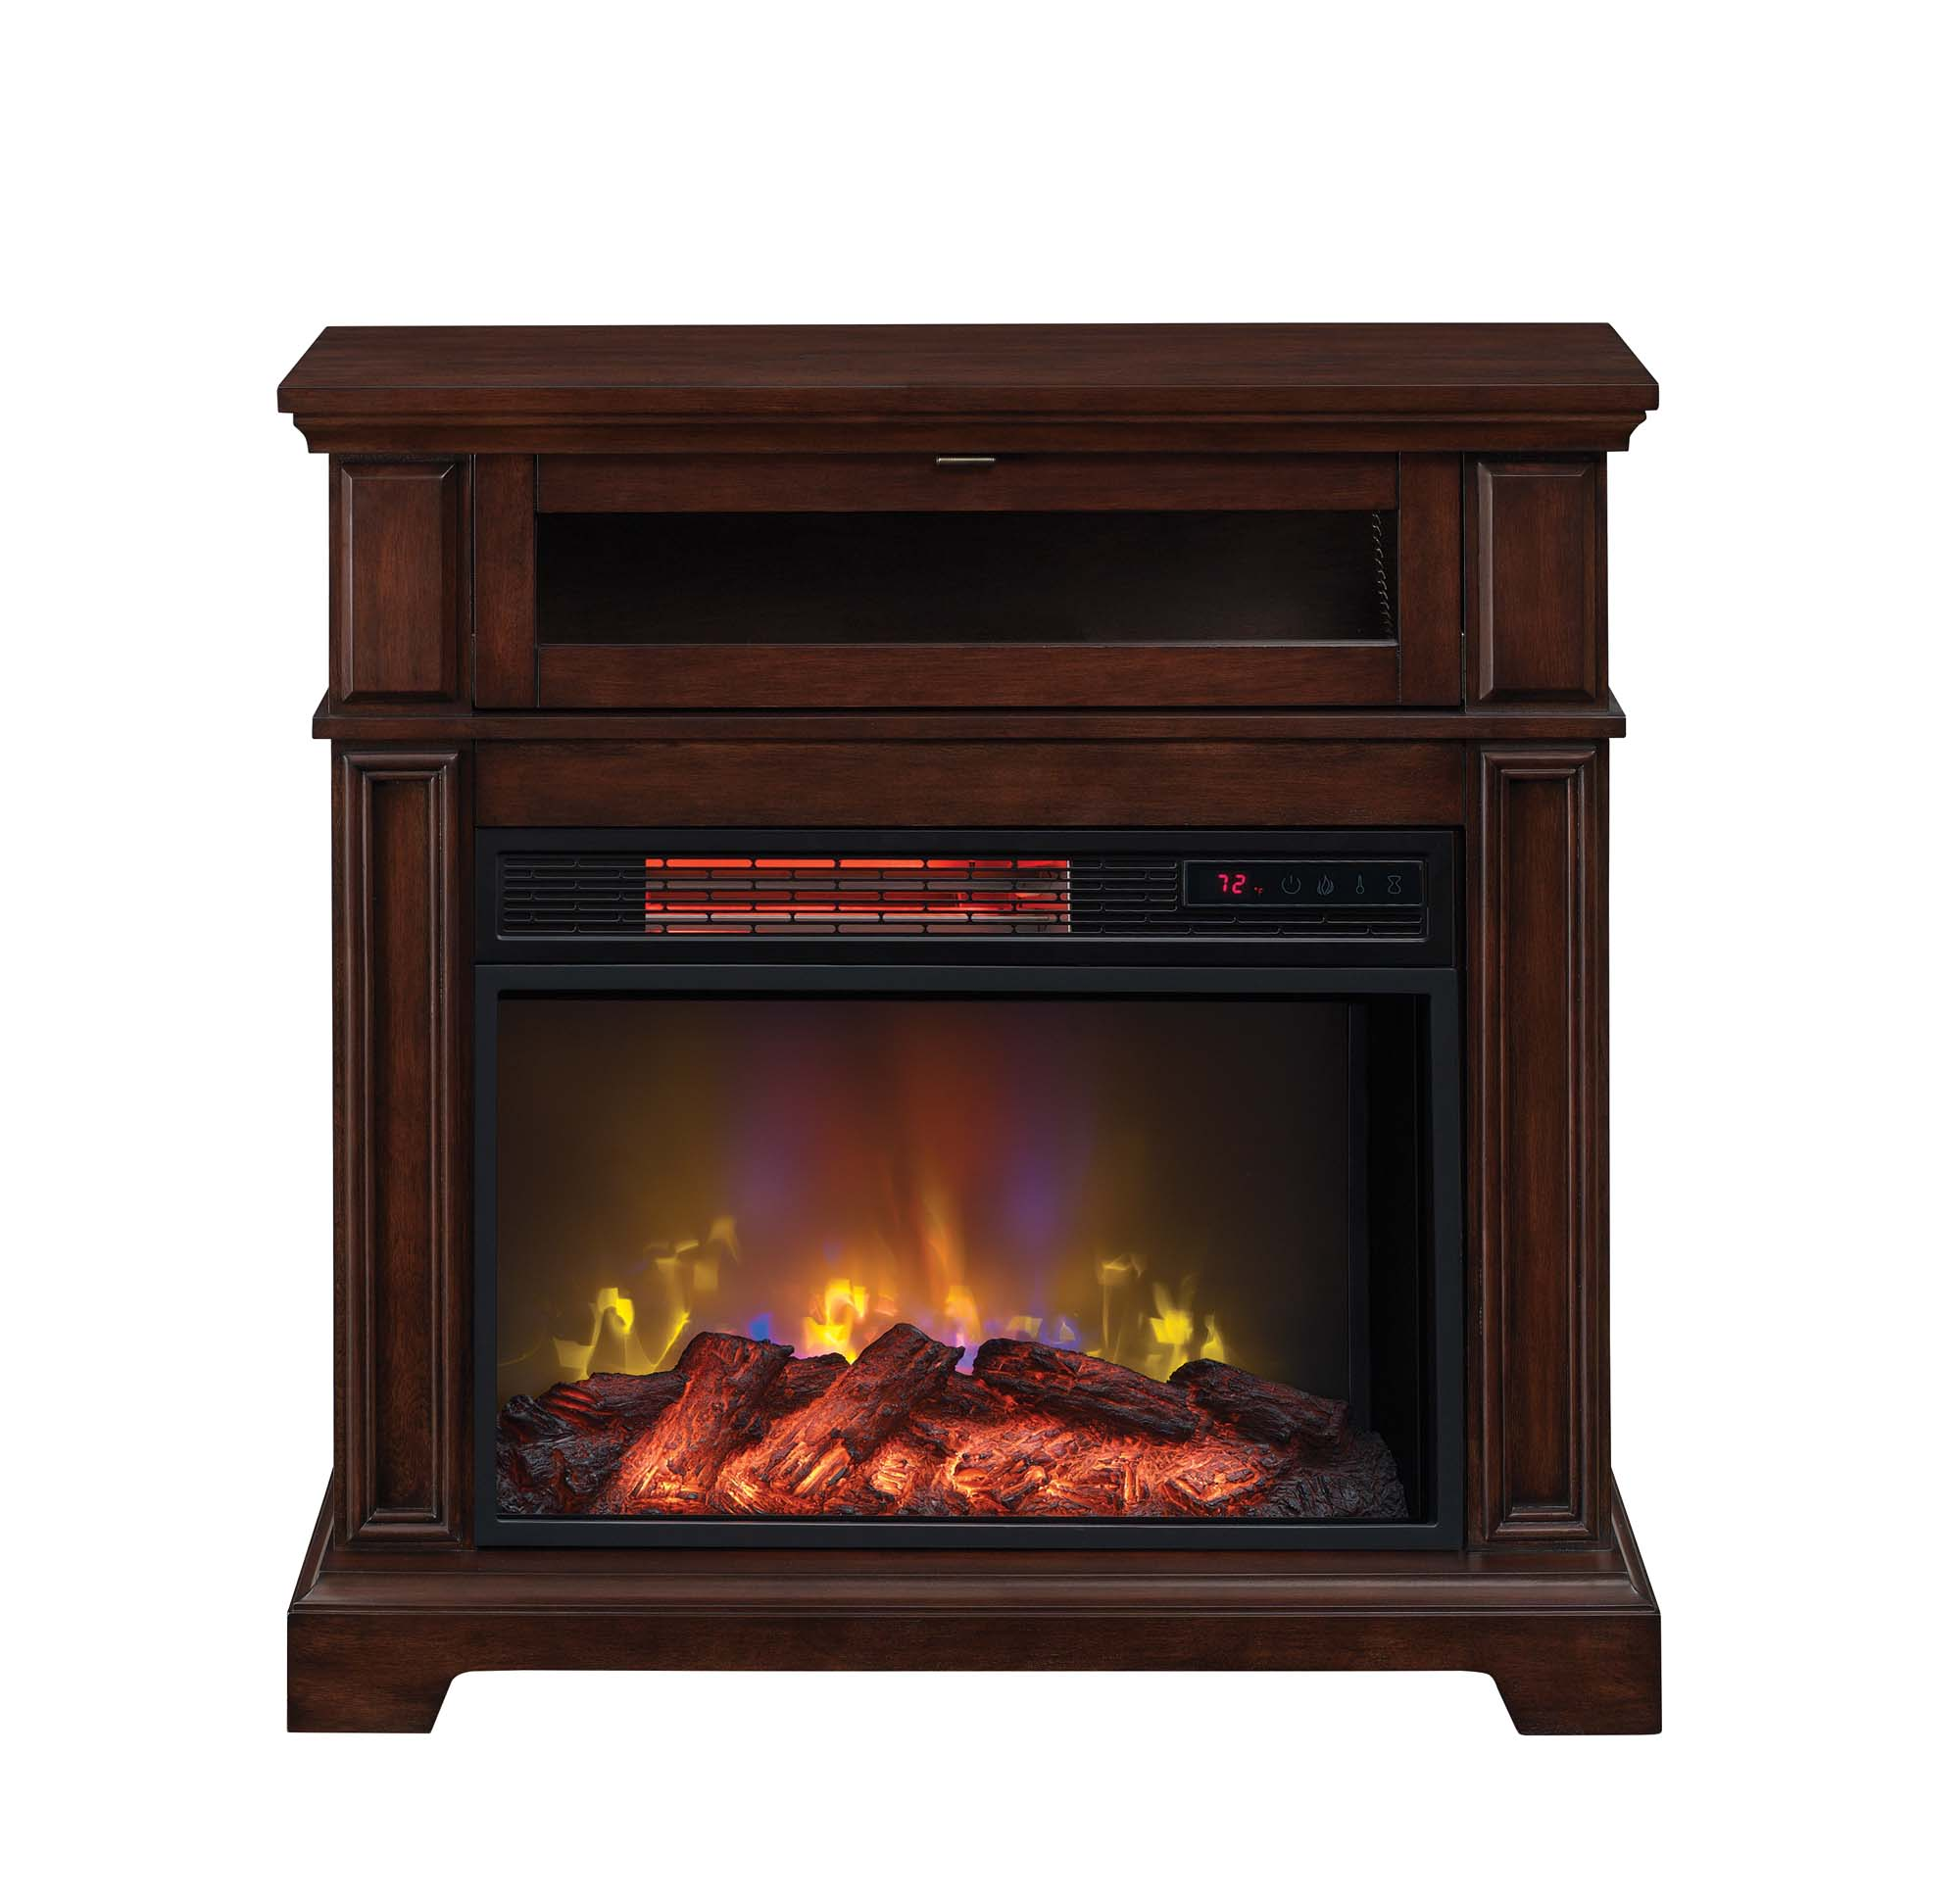 ChimneyFree 40 Infrared Quartz Electric Fireplace, Meridian Cherry